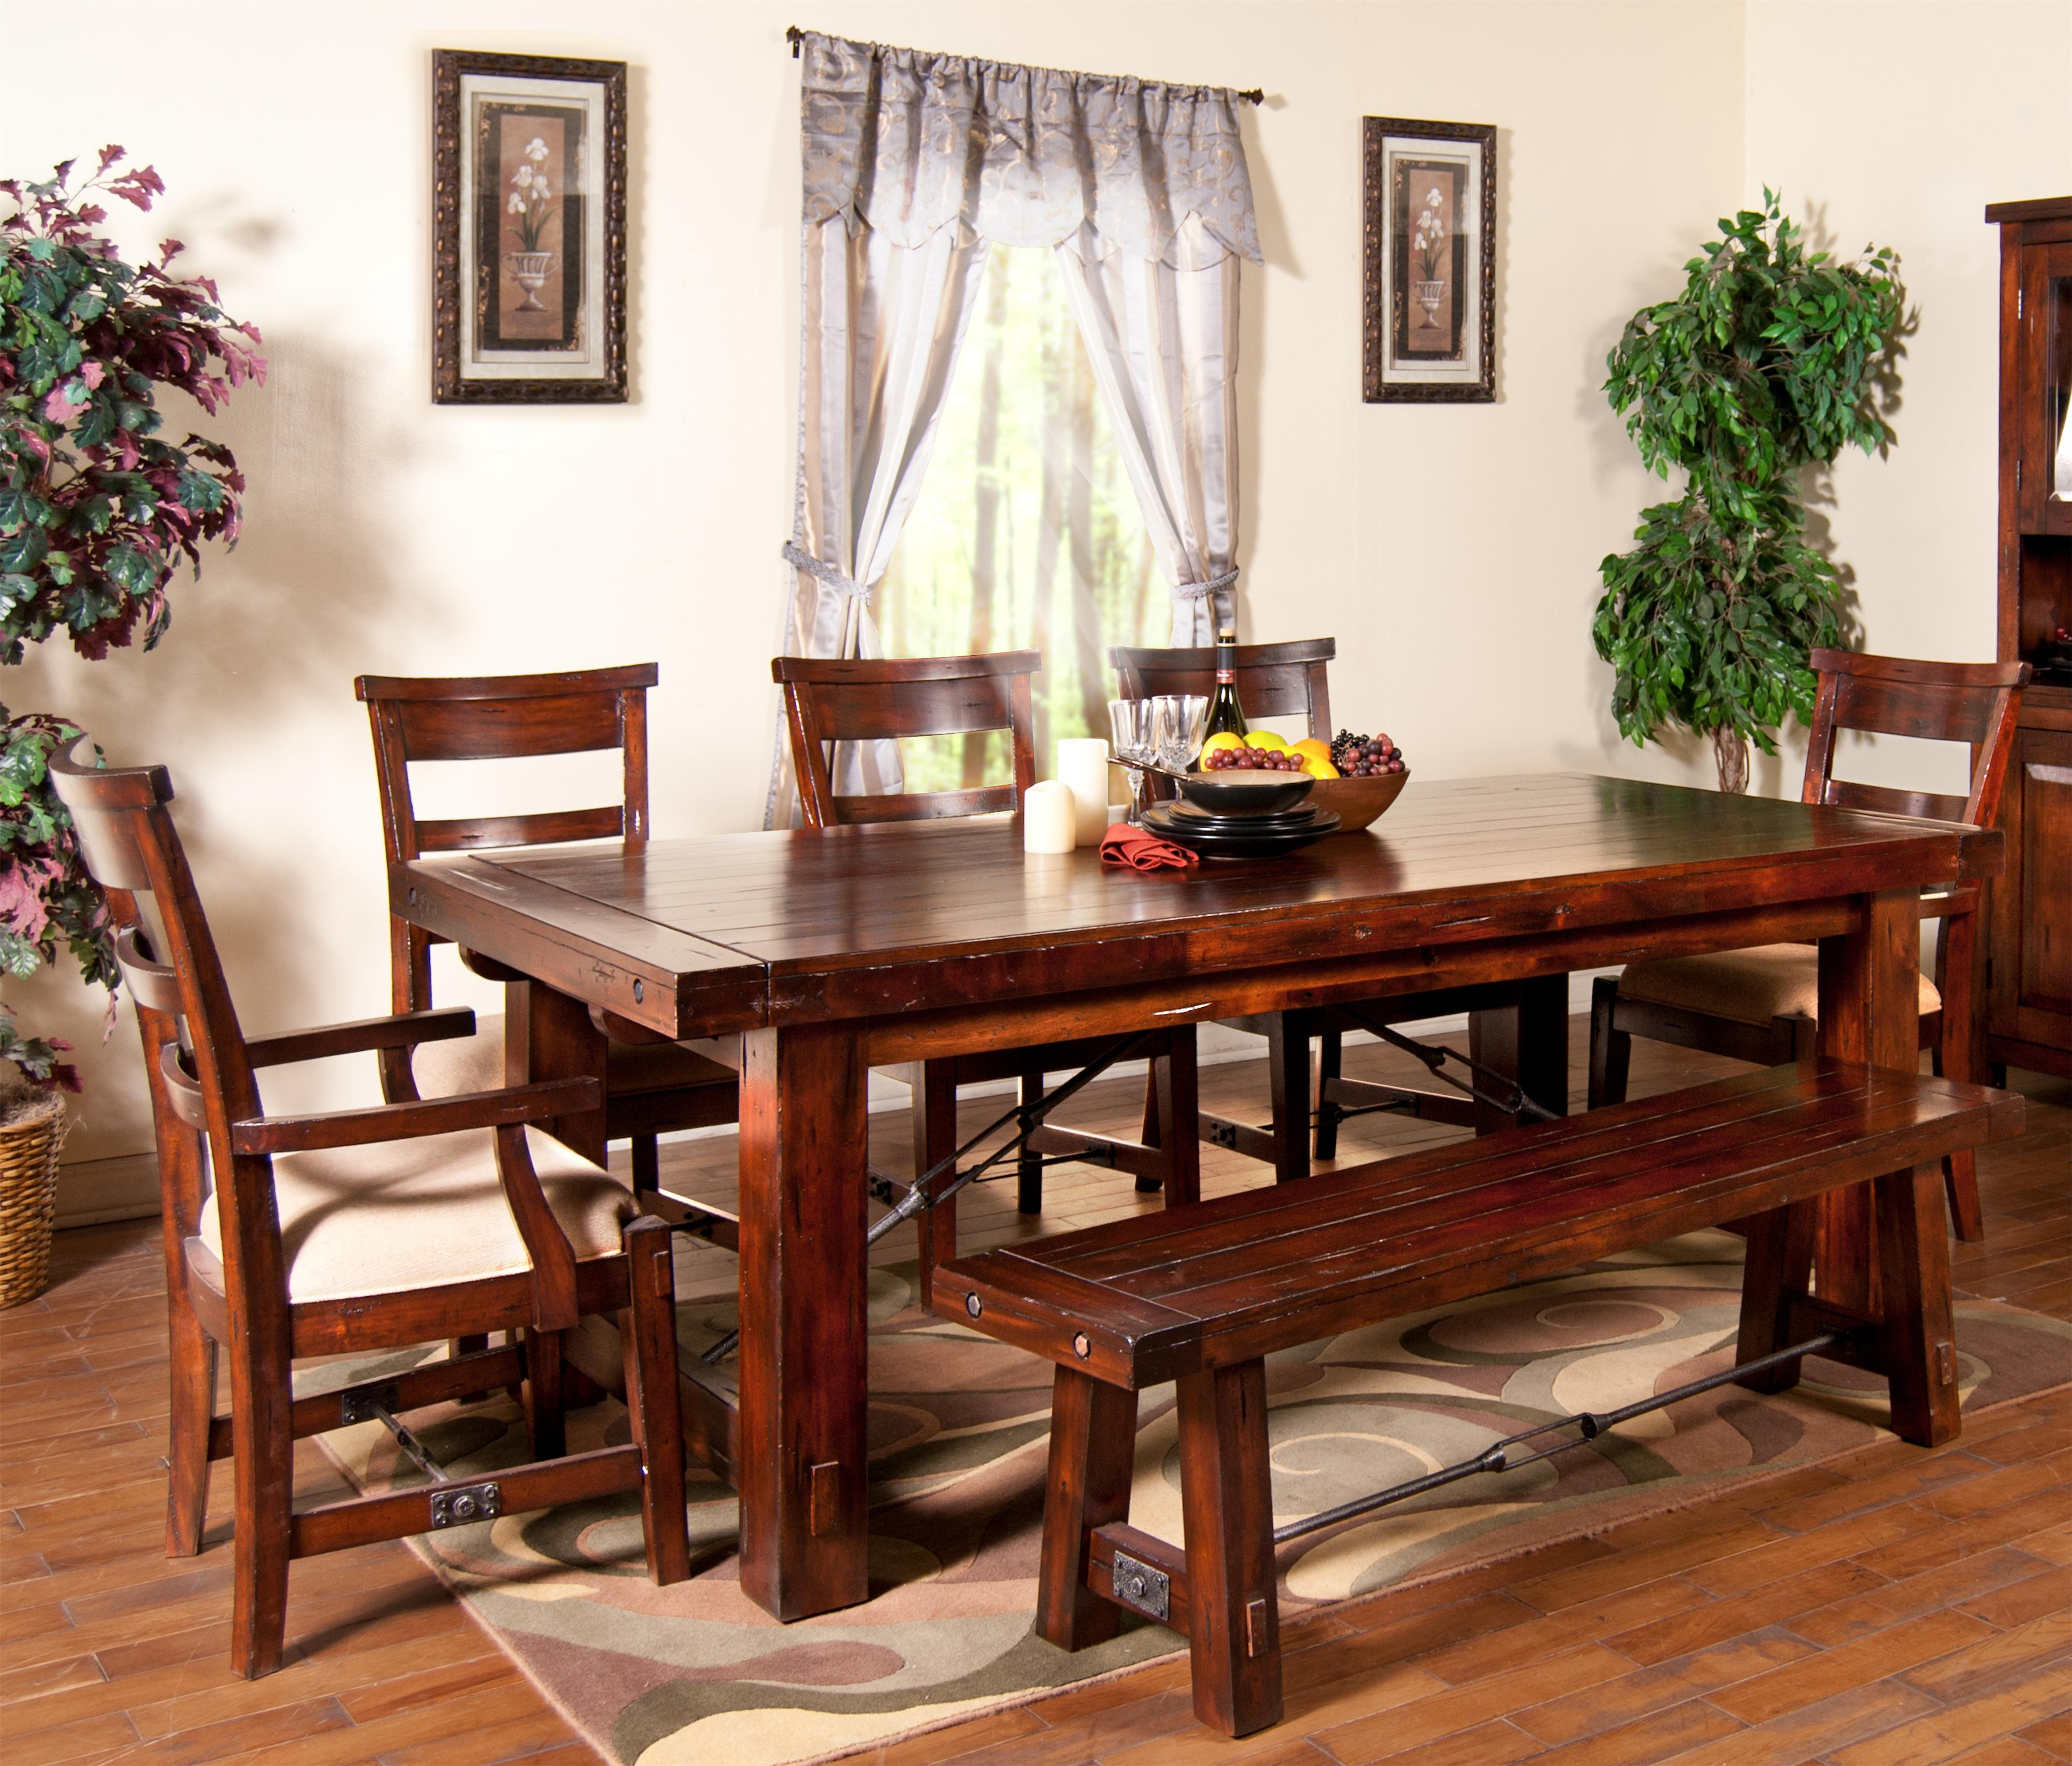 kitchen table bakers 7 Piece Extension Table with Chairs and Bench Set